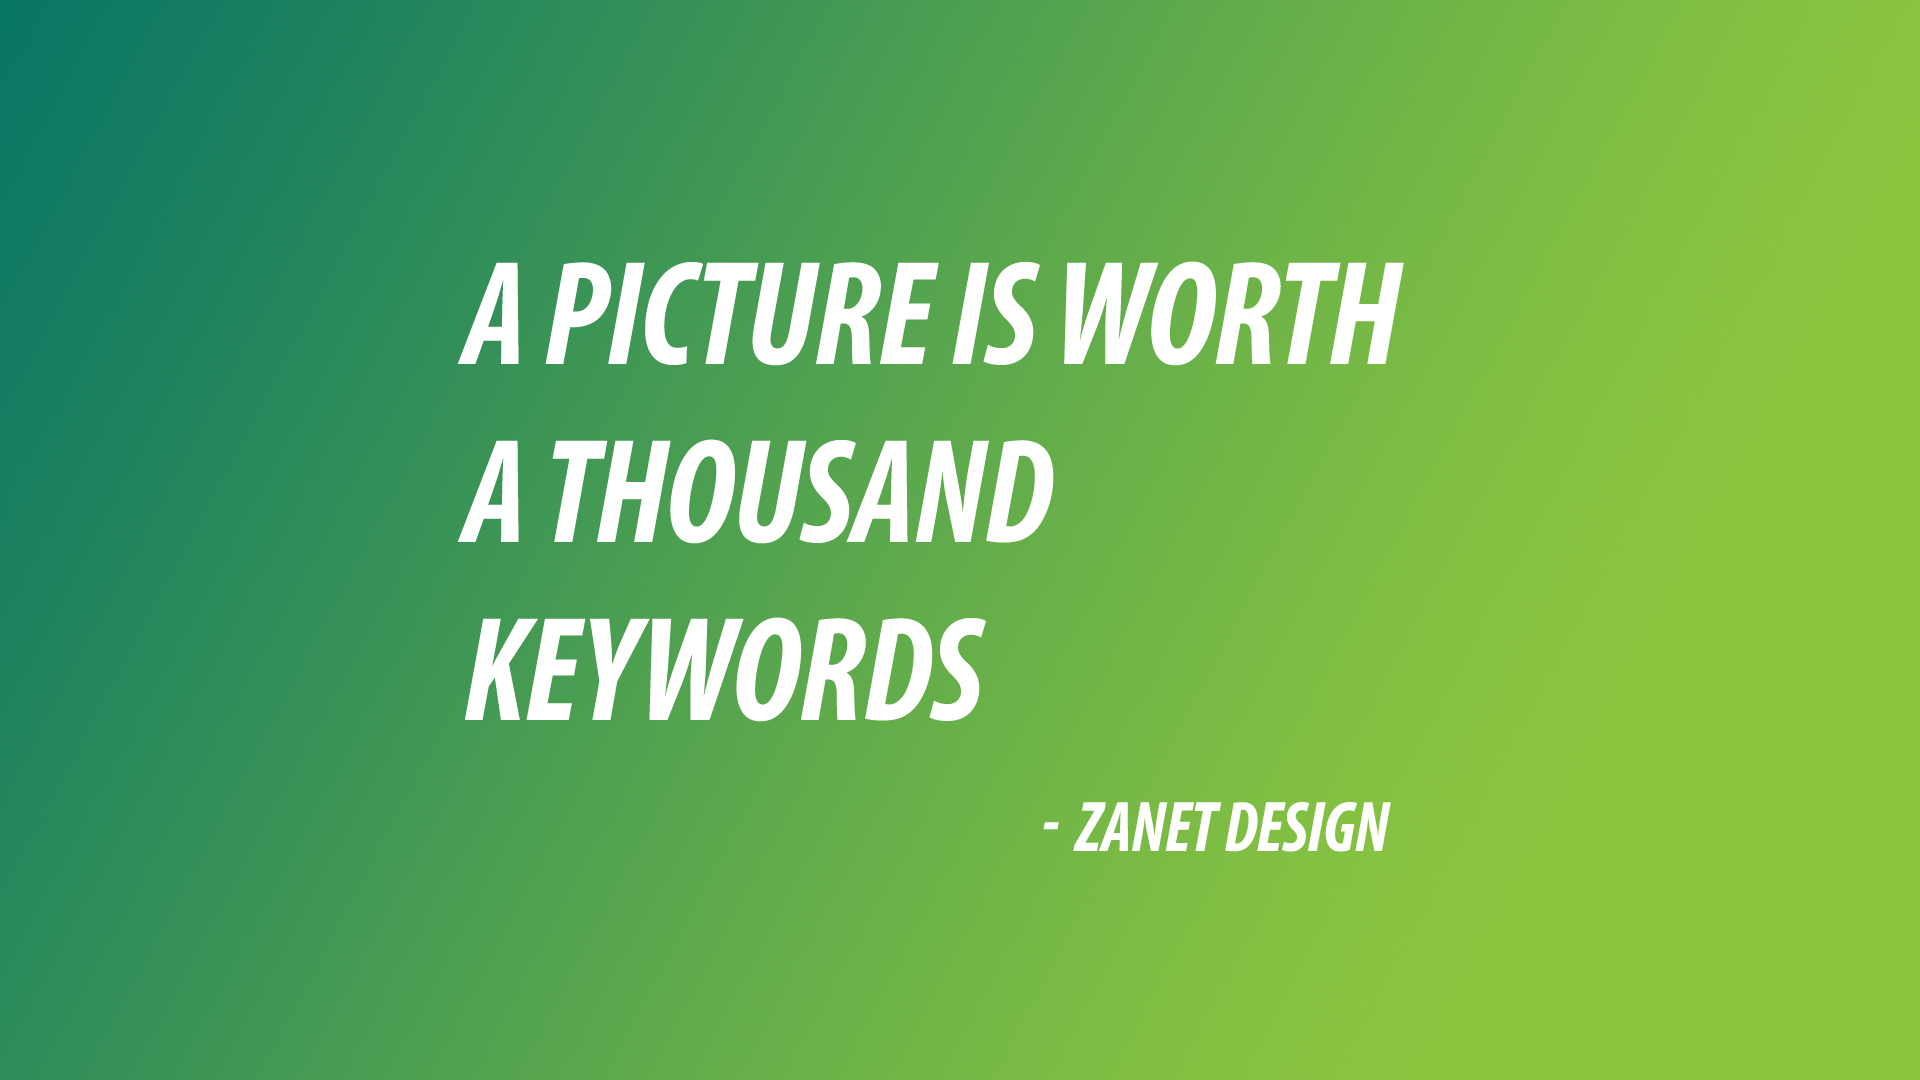 A picture (or photo) is worth a thousand keywords